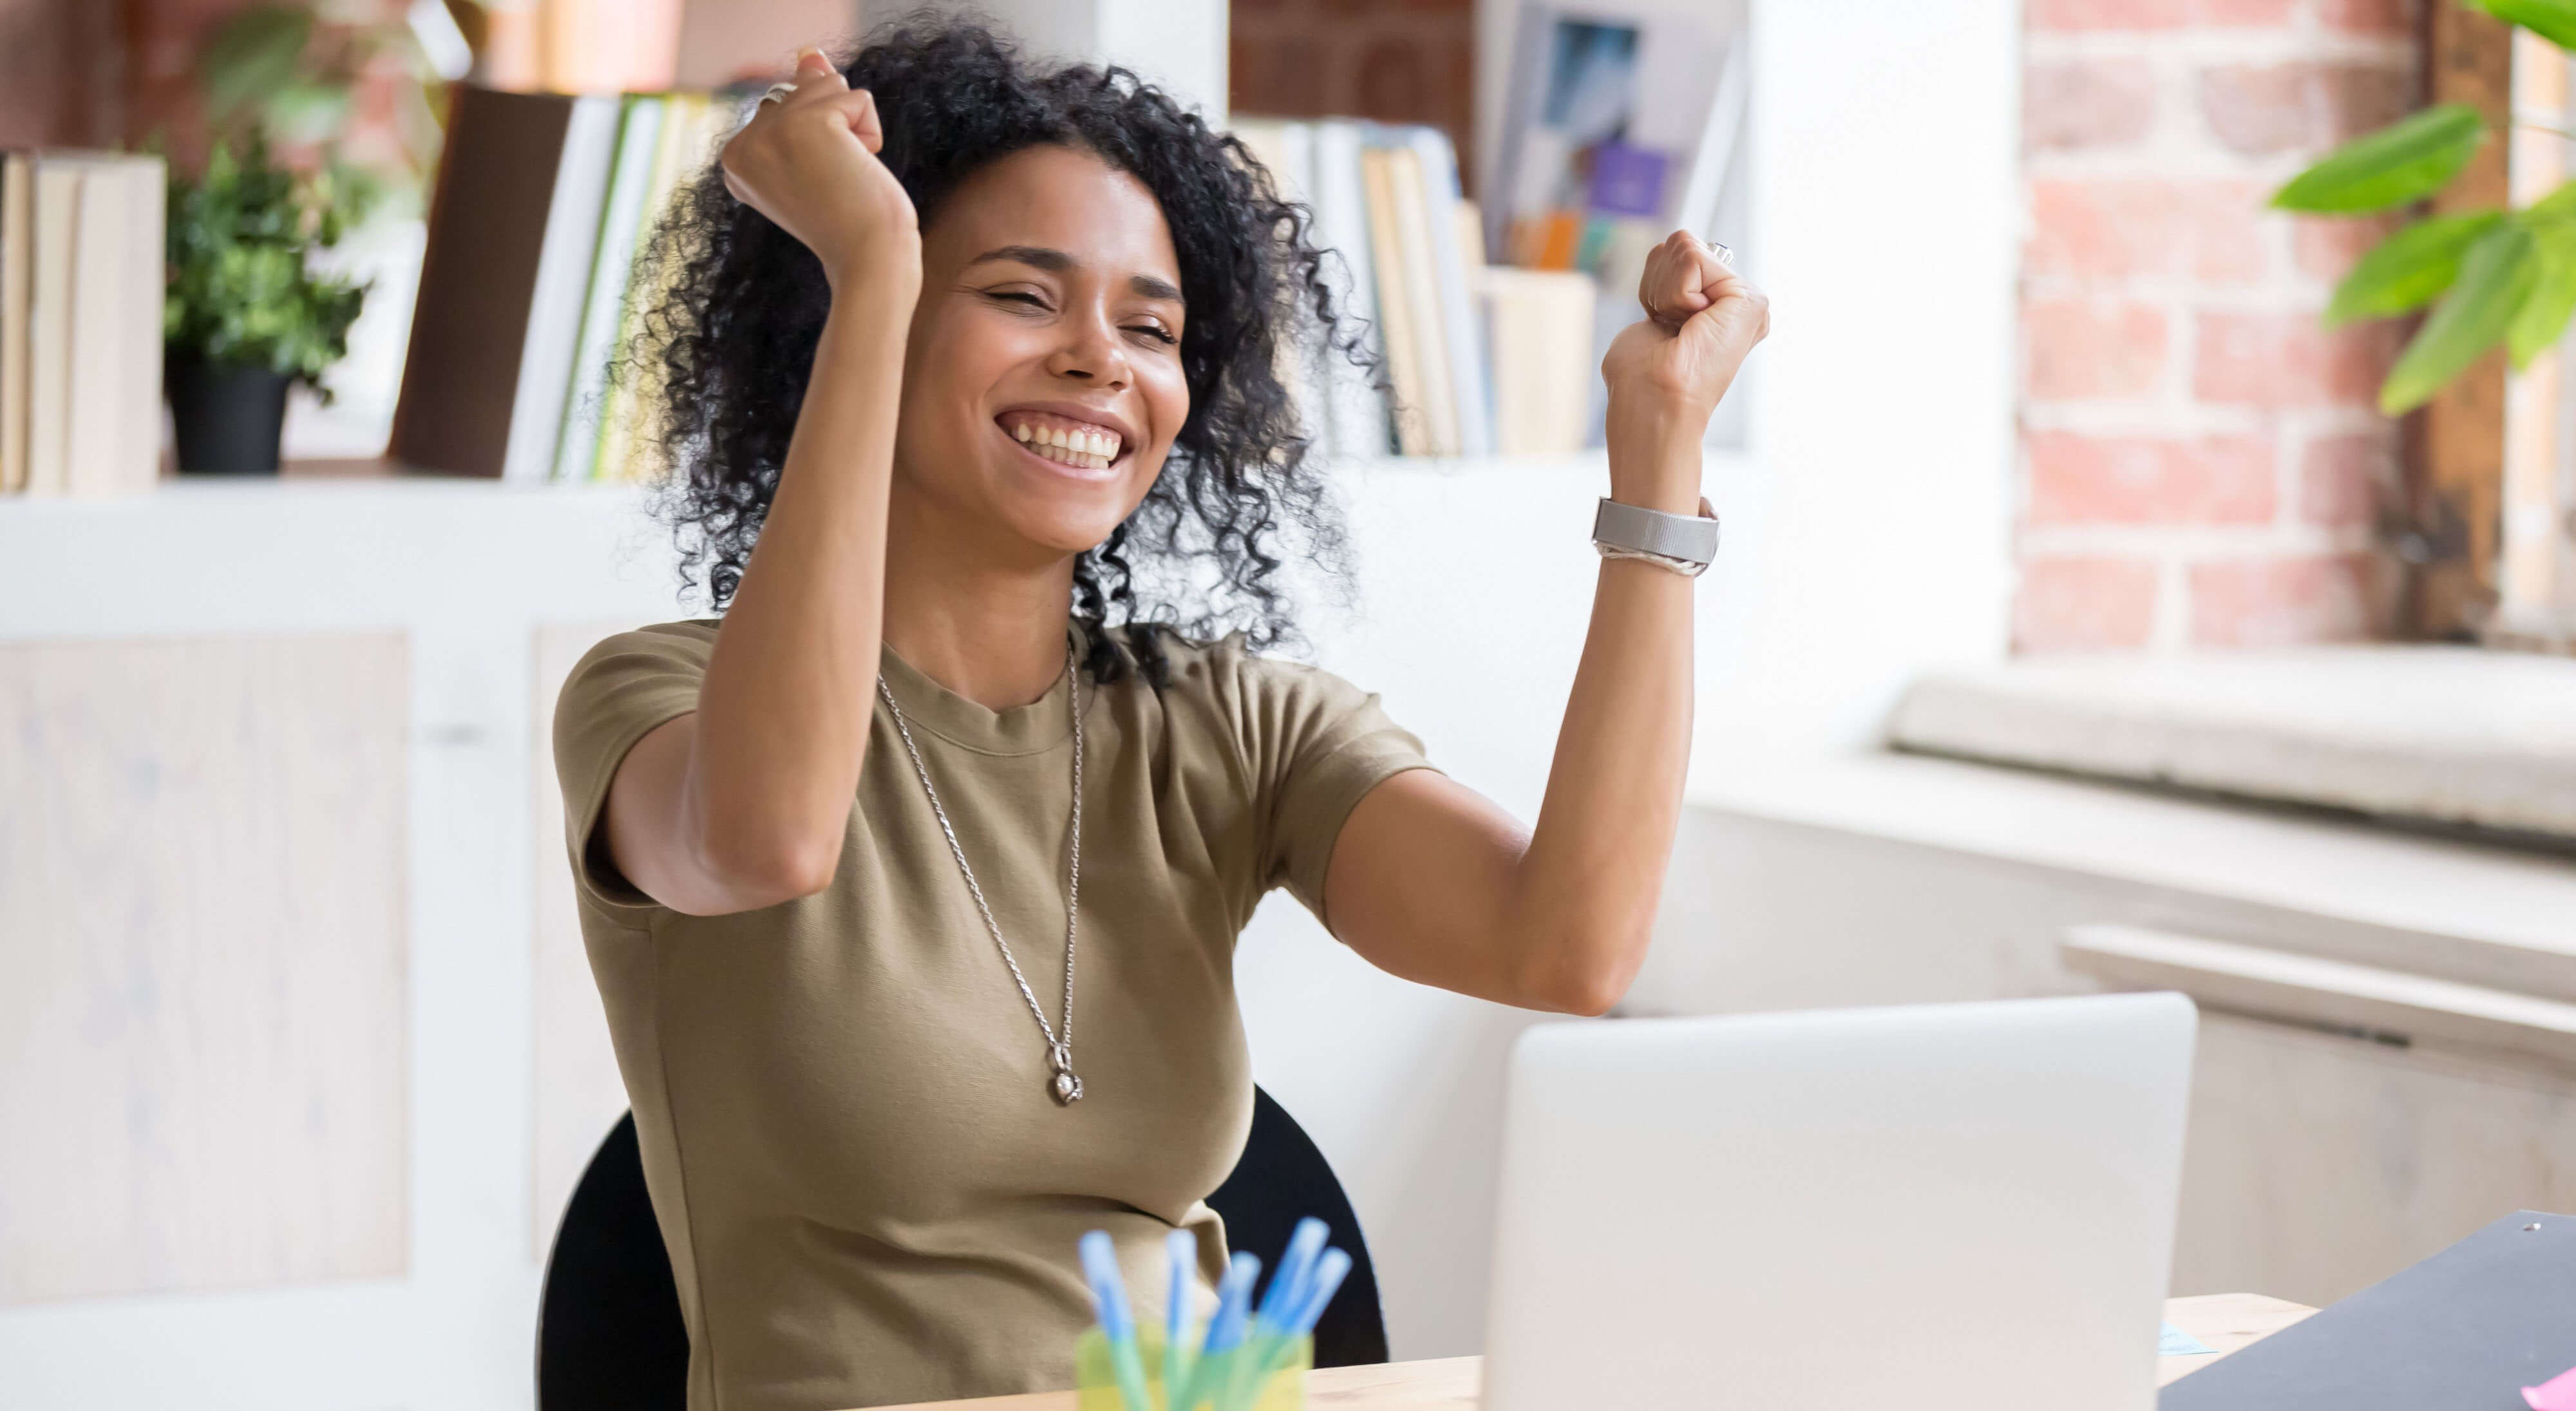 motivated woman smiling with both fists raised